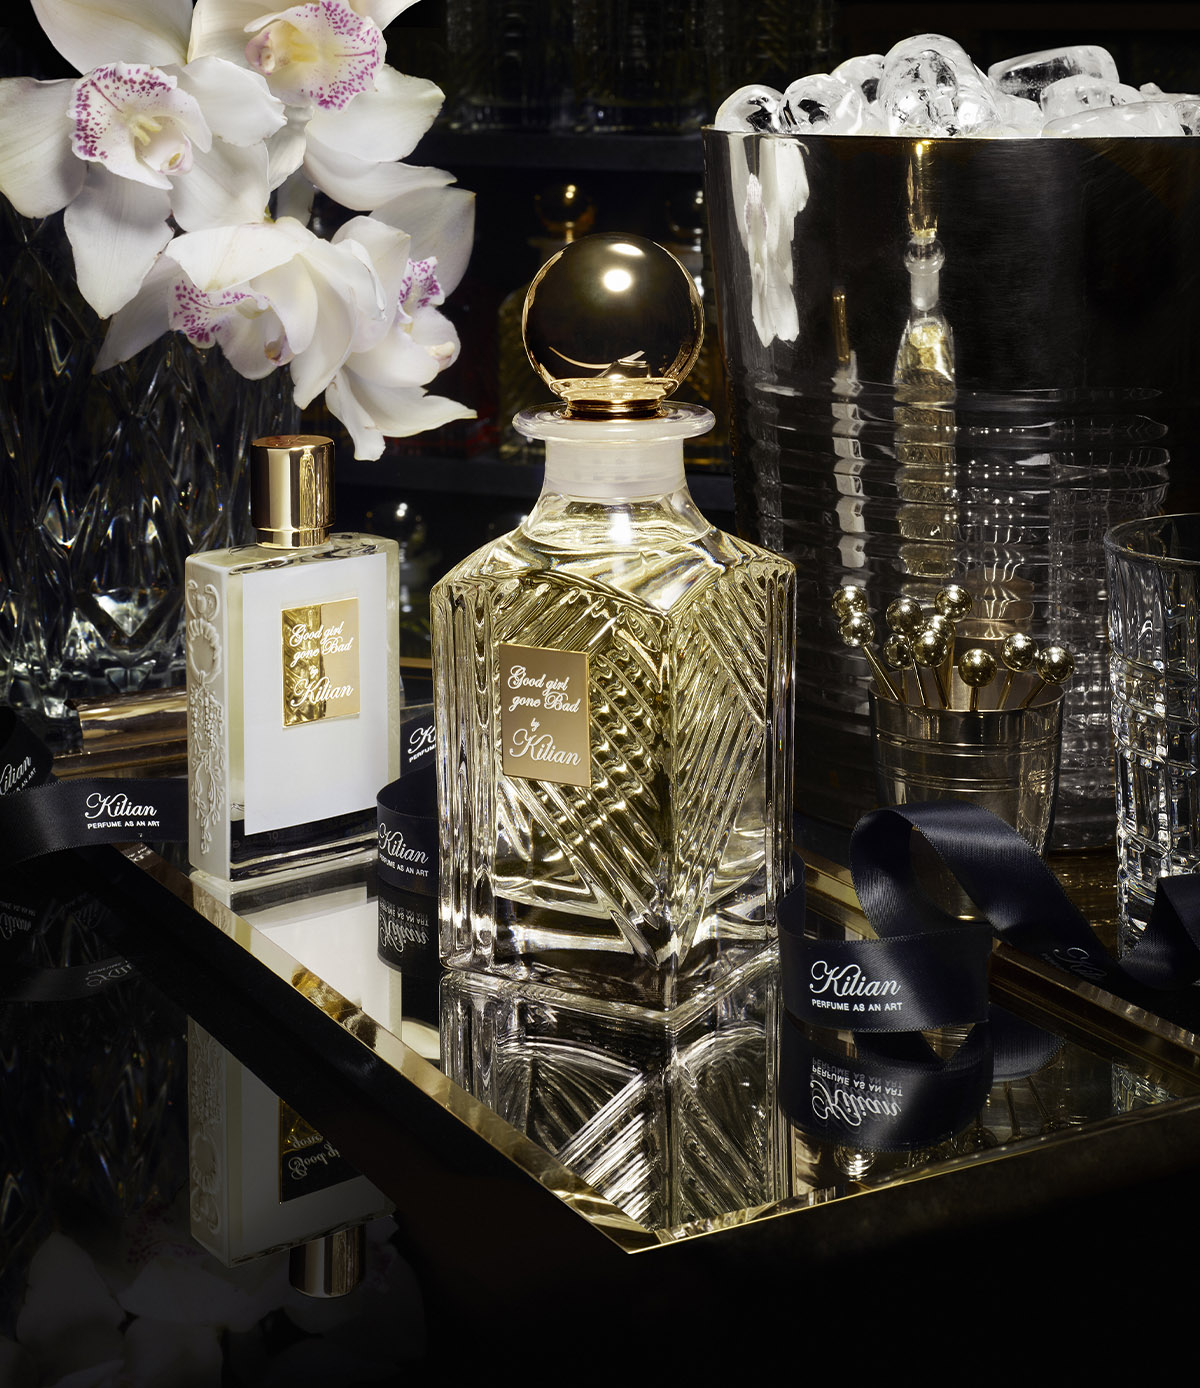 Kilian Perfume As An Art Discover Luxury Perfumes From The